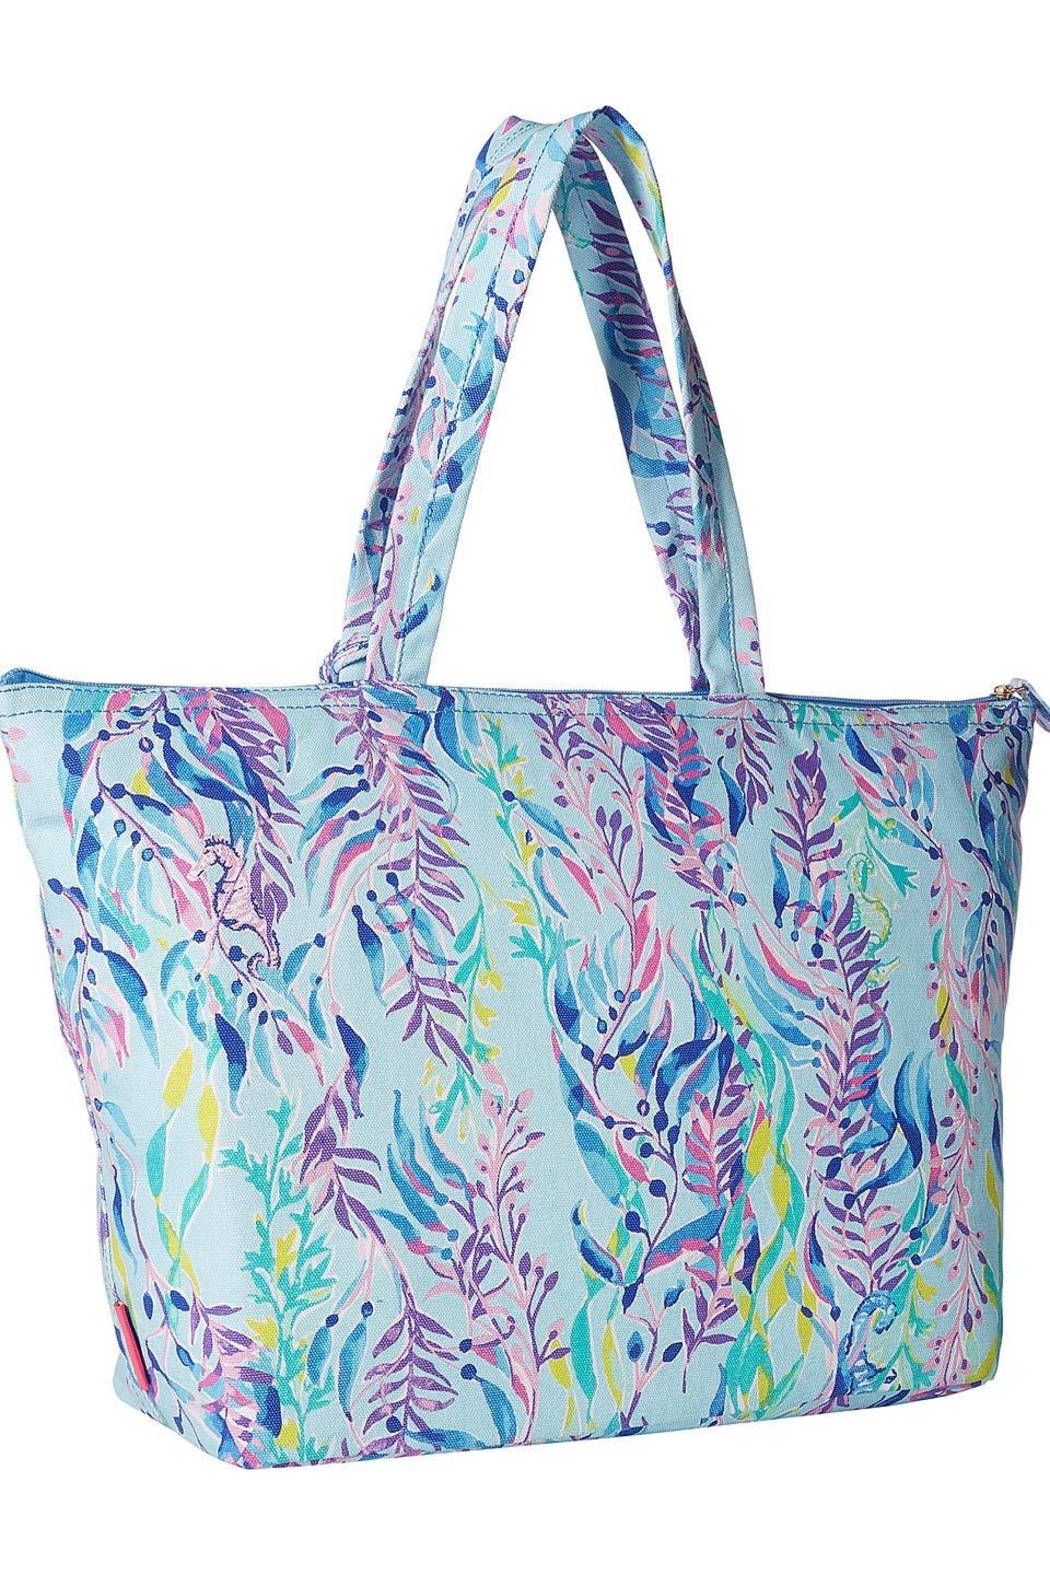 Lilly Pulitzer  Palm Beach Zip-Up Tote - Front Full Image